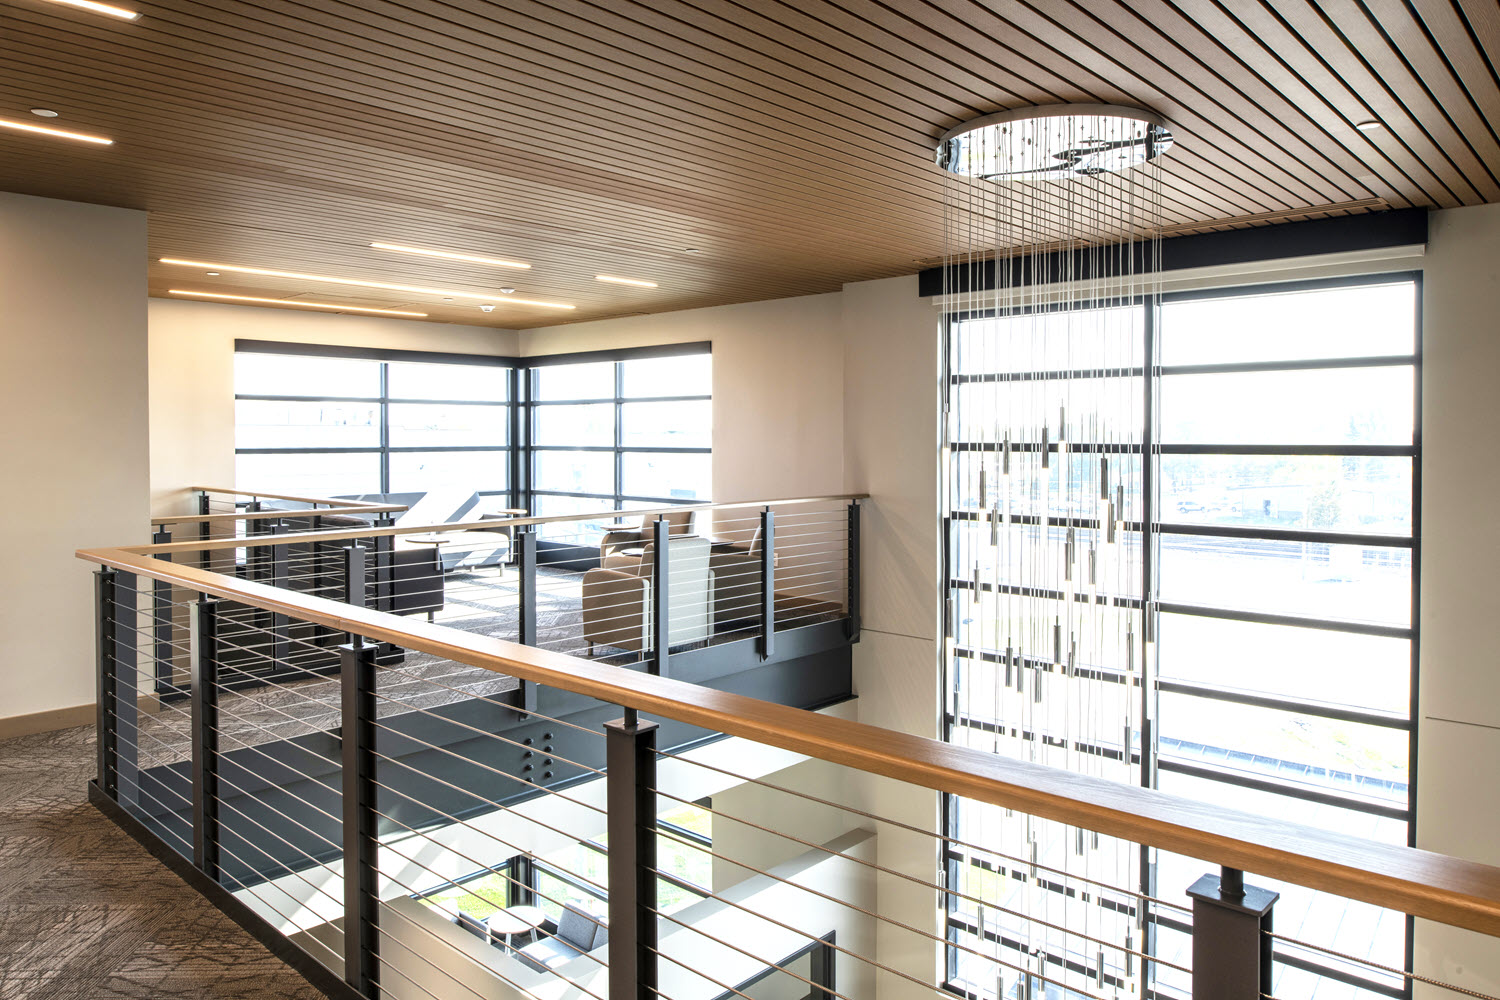 Office Atrium with industrial style cable railing system.